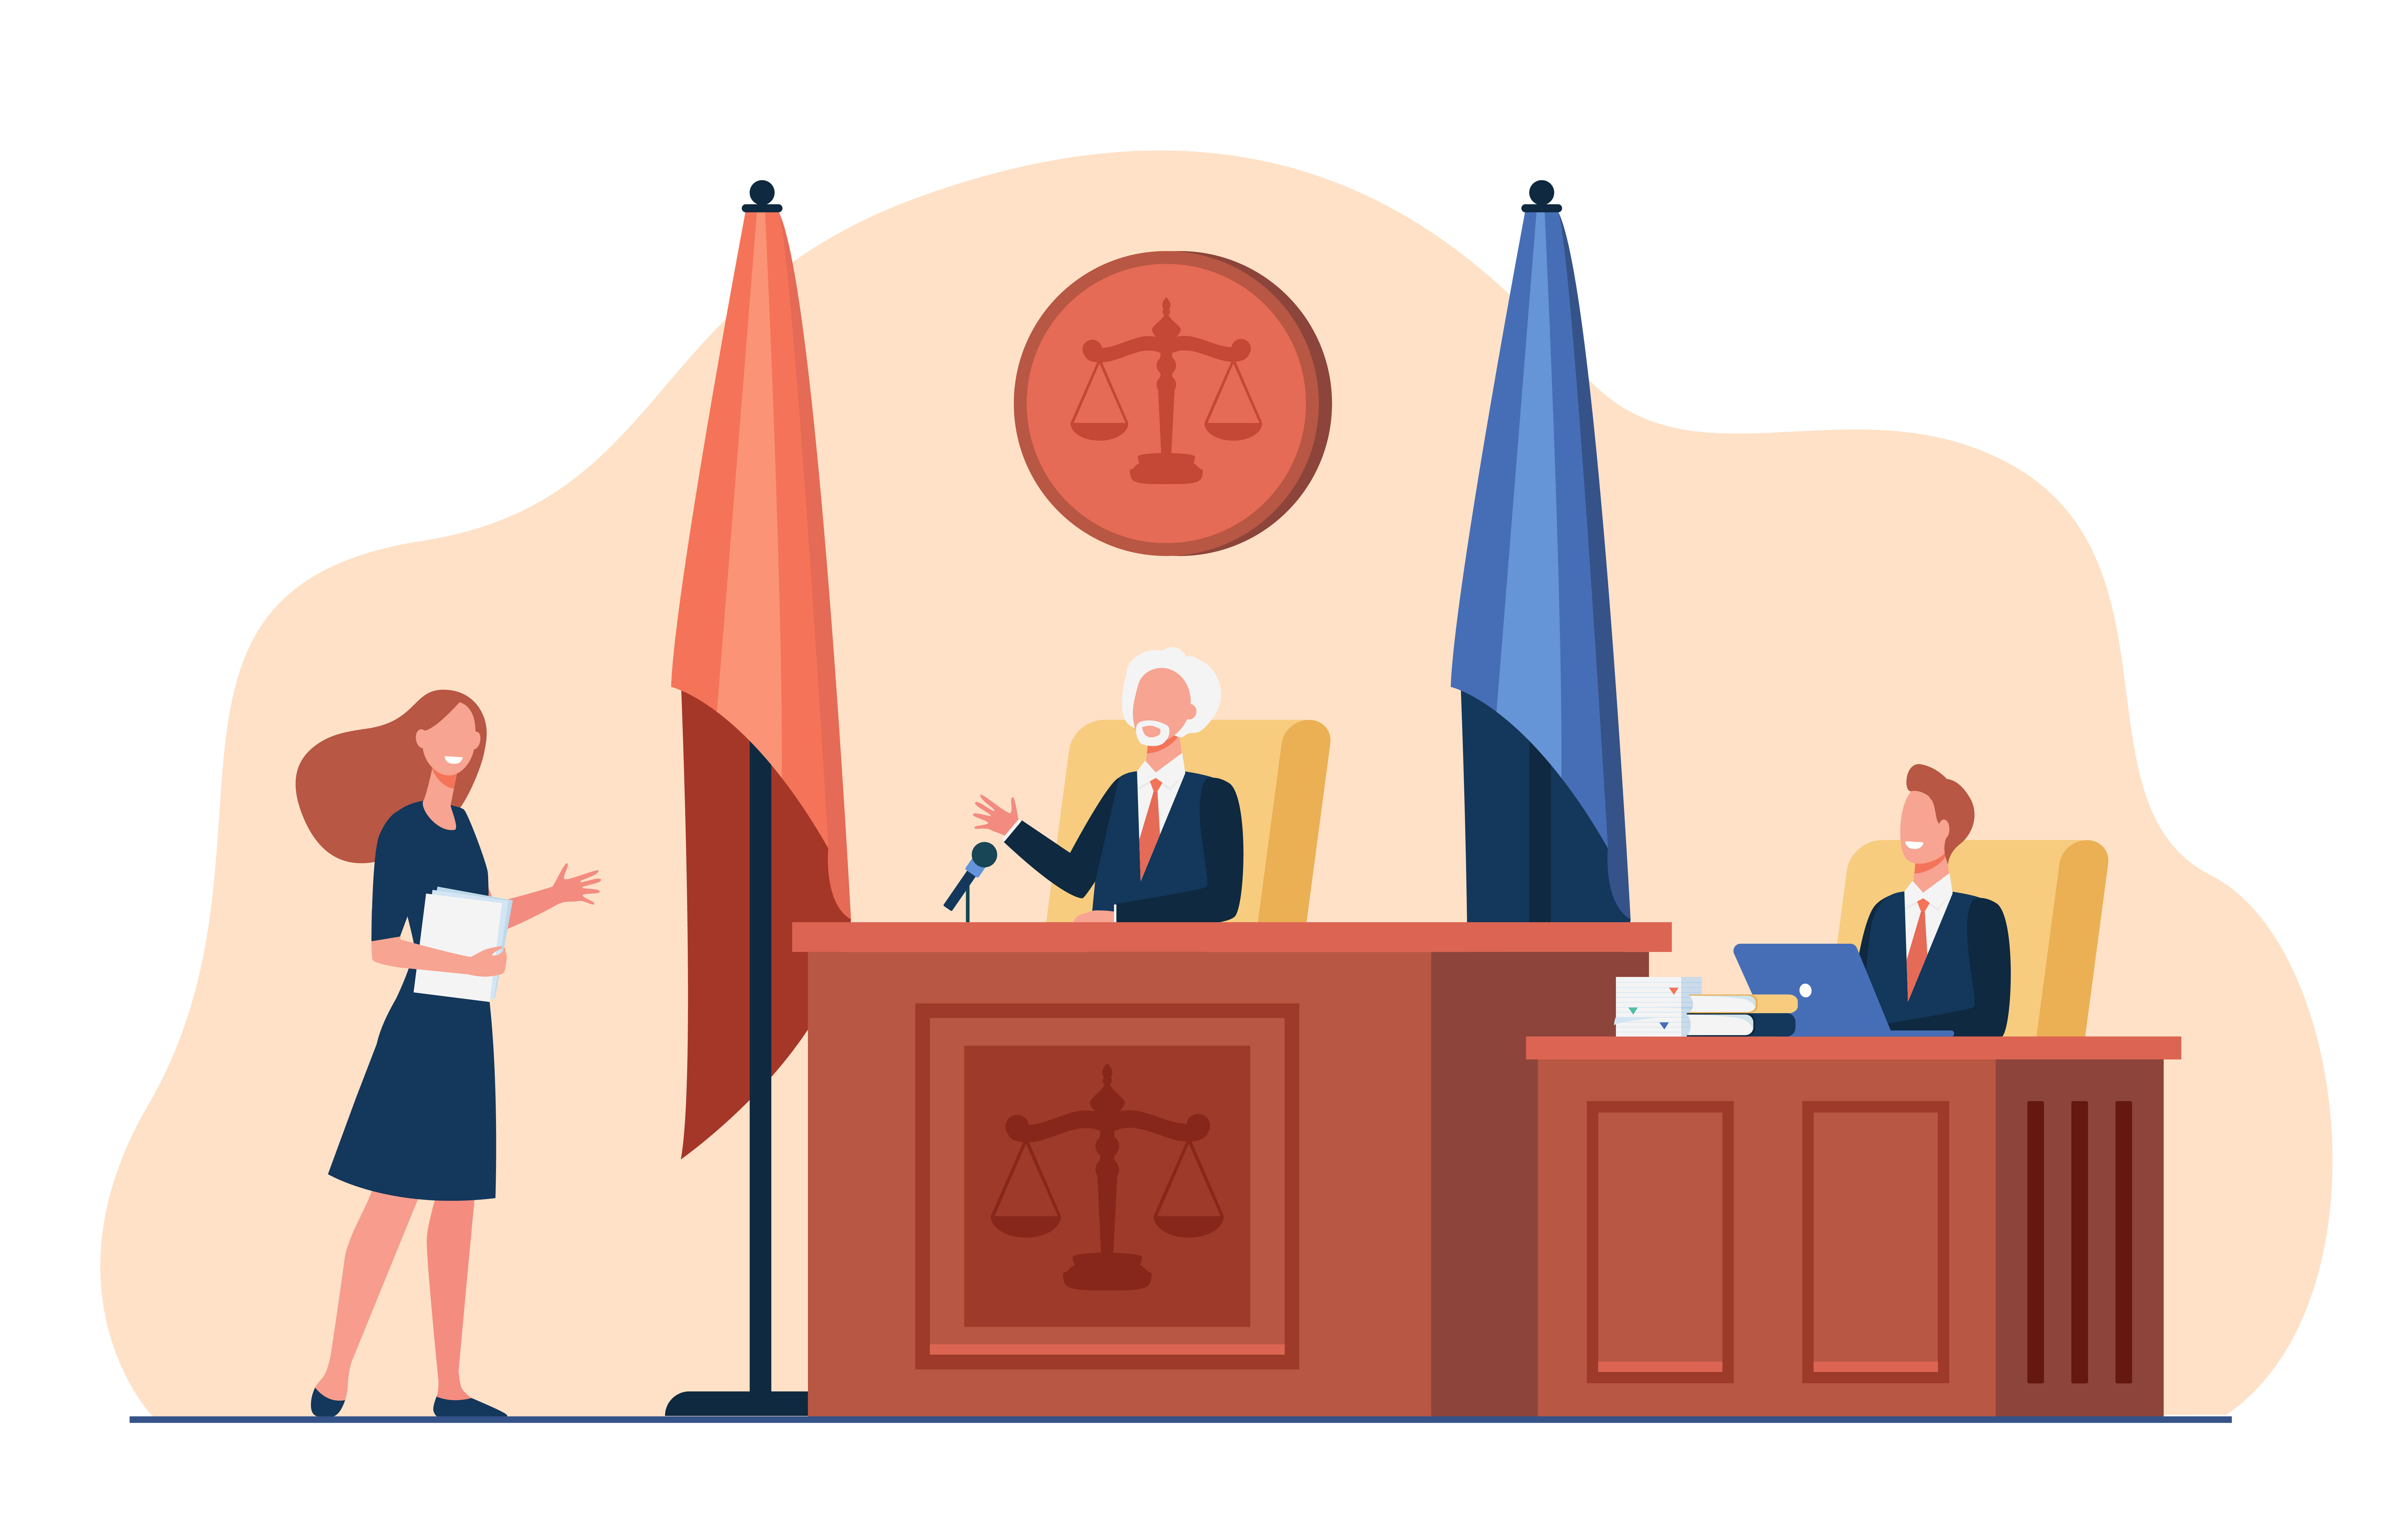 Female attorney standing in front of judge and talking isolated flat vector illustration. Cartoon courtroom or courthouse during trial. Justice and law concept